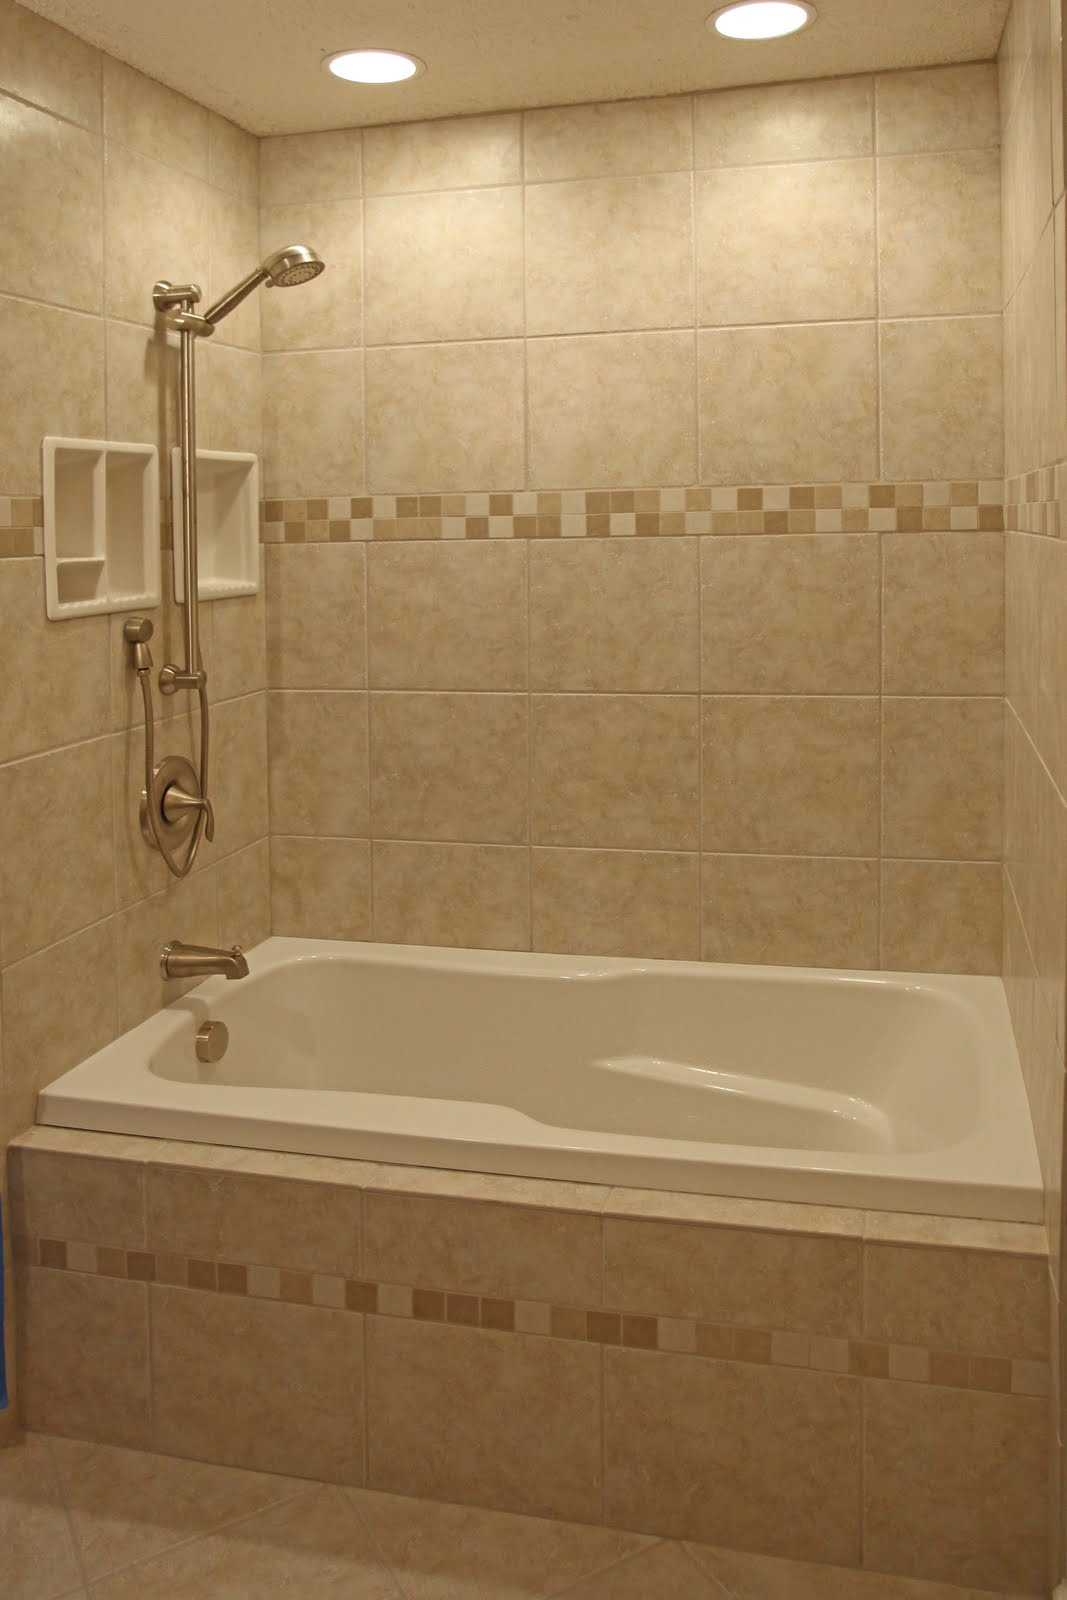 bathroom remodeling design ideas tile shower niches On tile design bathroom ideas